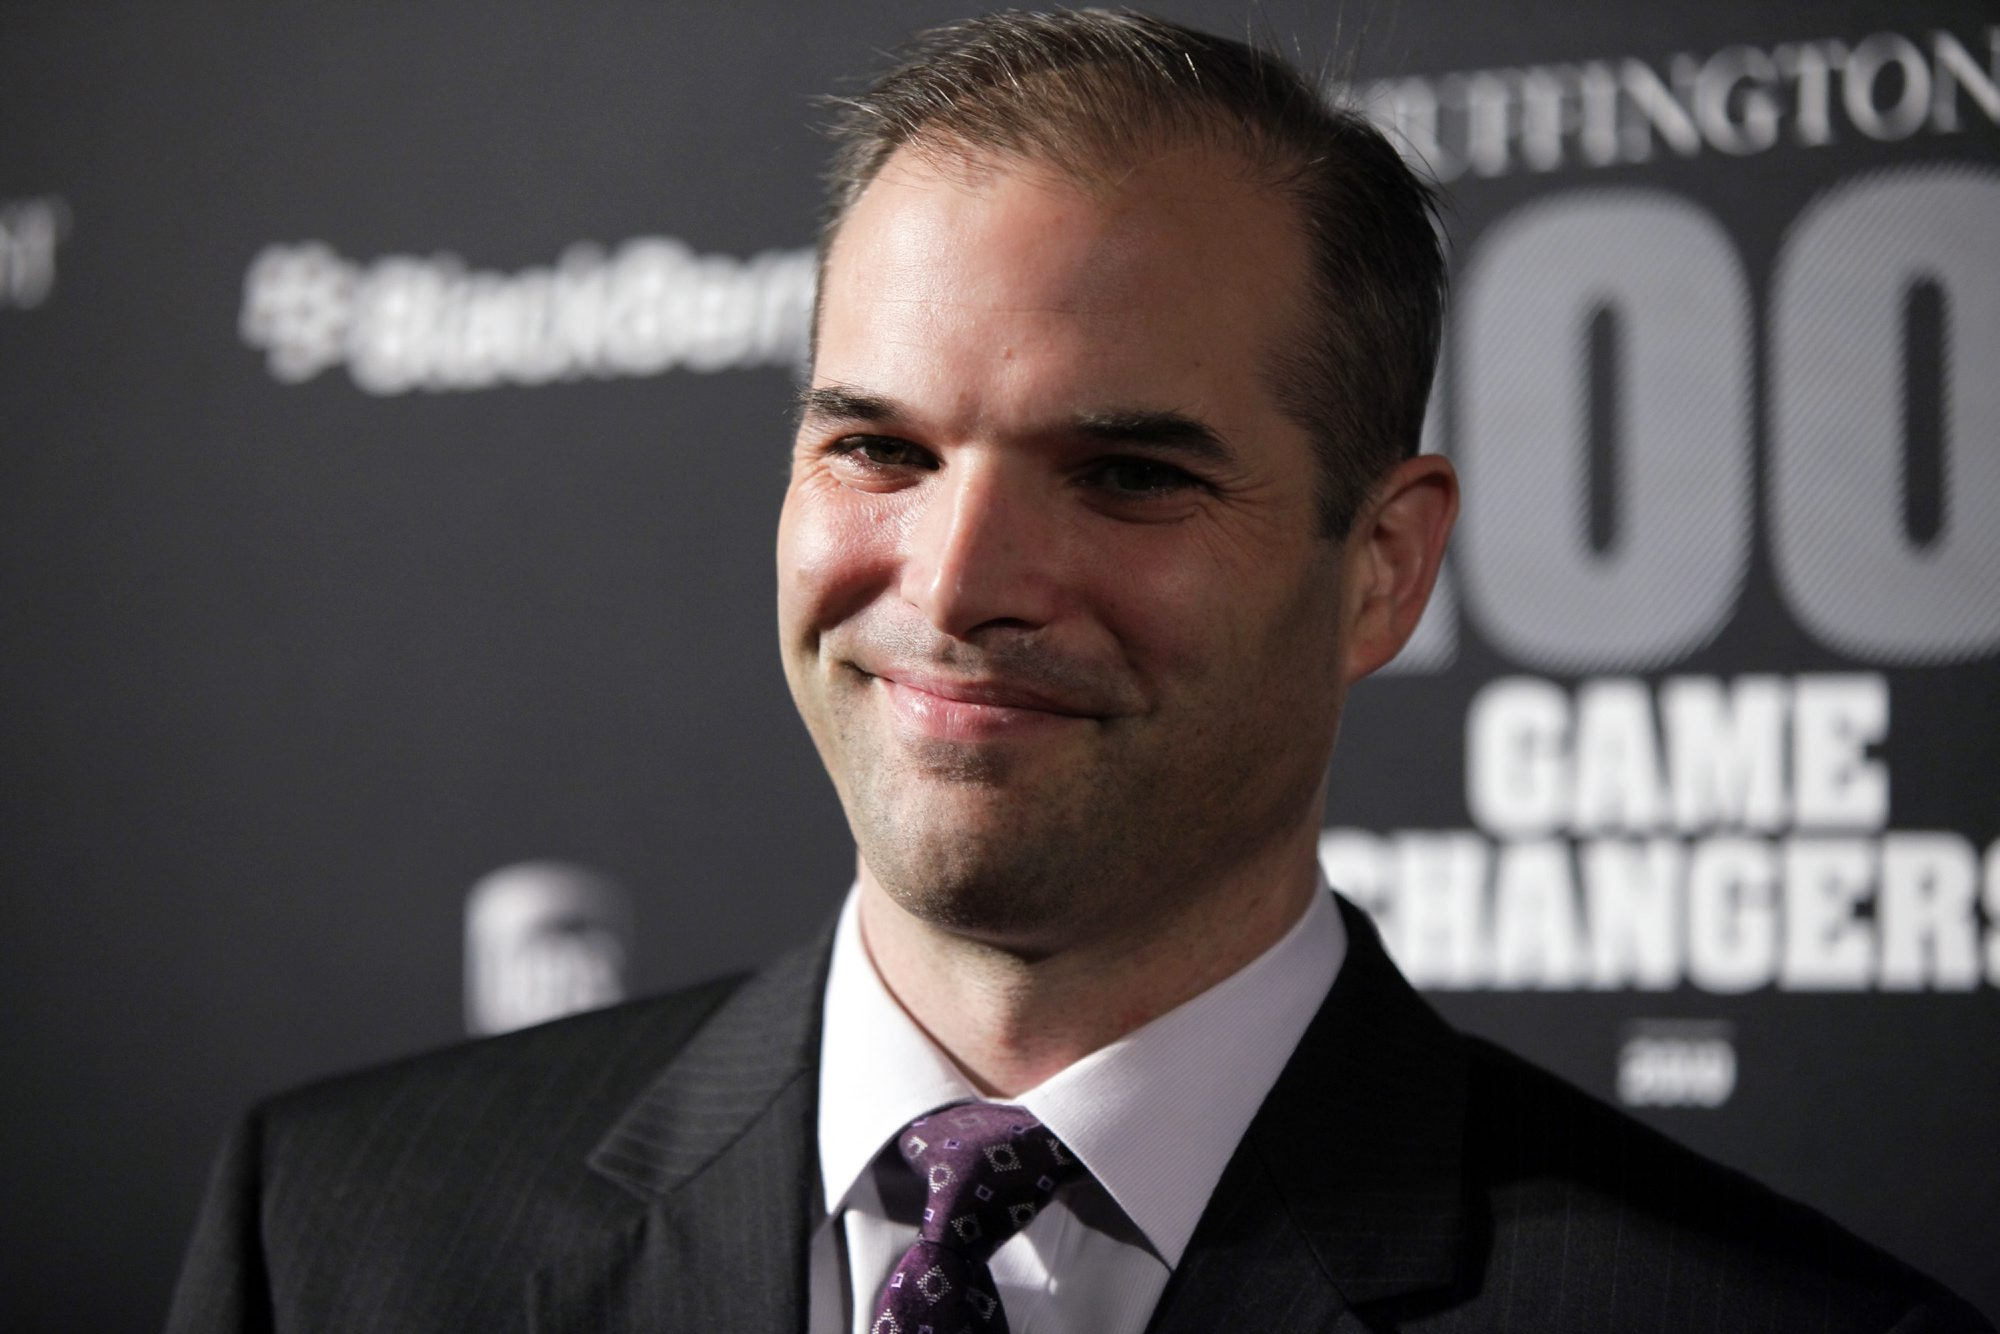 """Matt Taibbi at the Huffington Post 2010 """"Game Changers"""" event in 2010.  (Neilson Barnard/Getty Images)"""